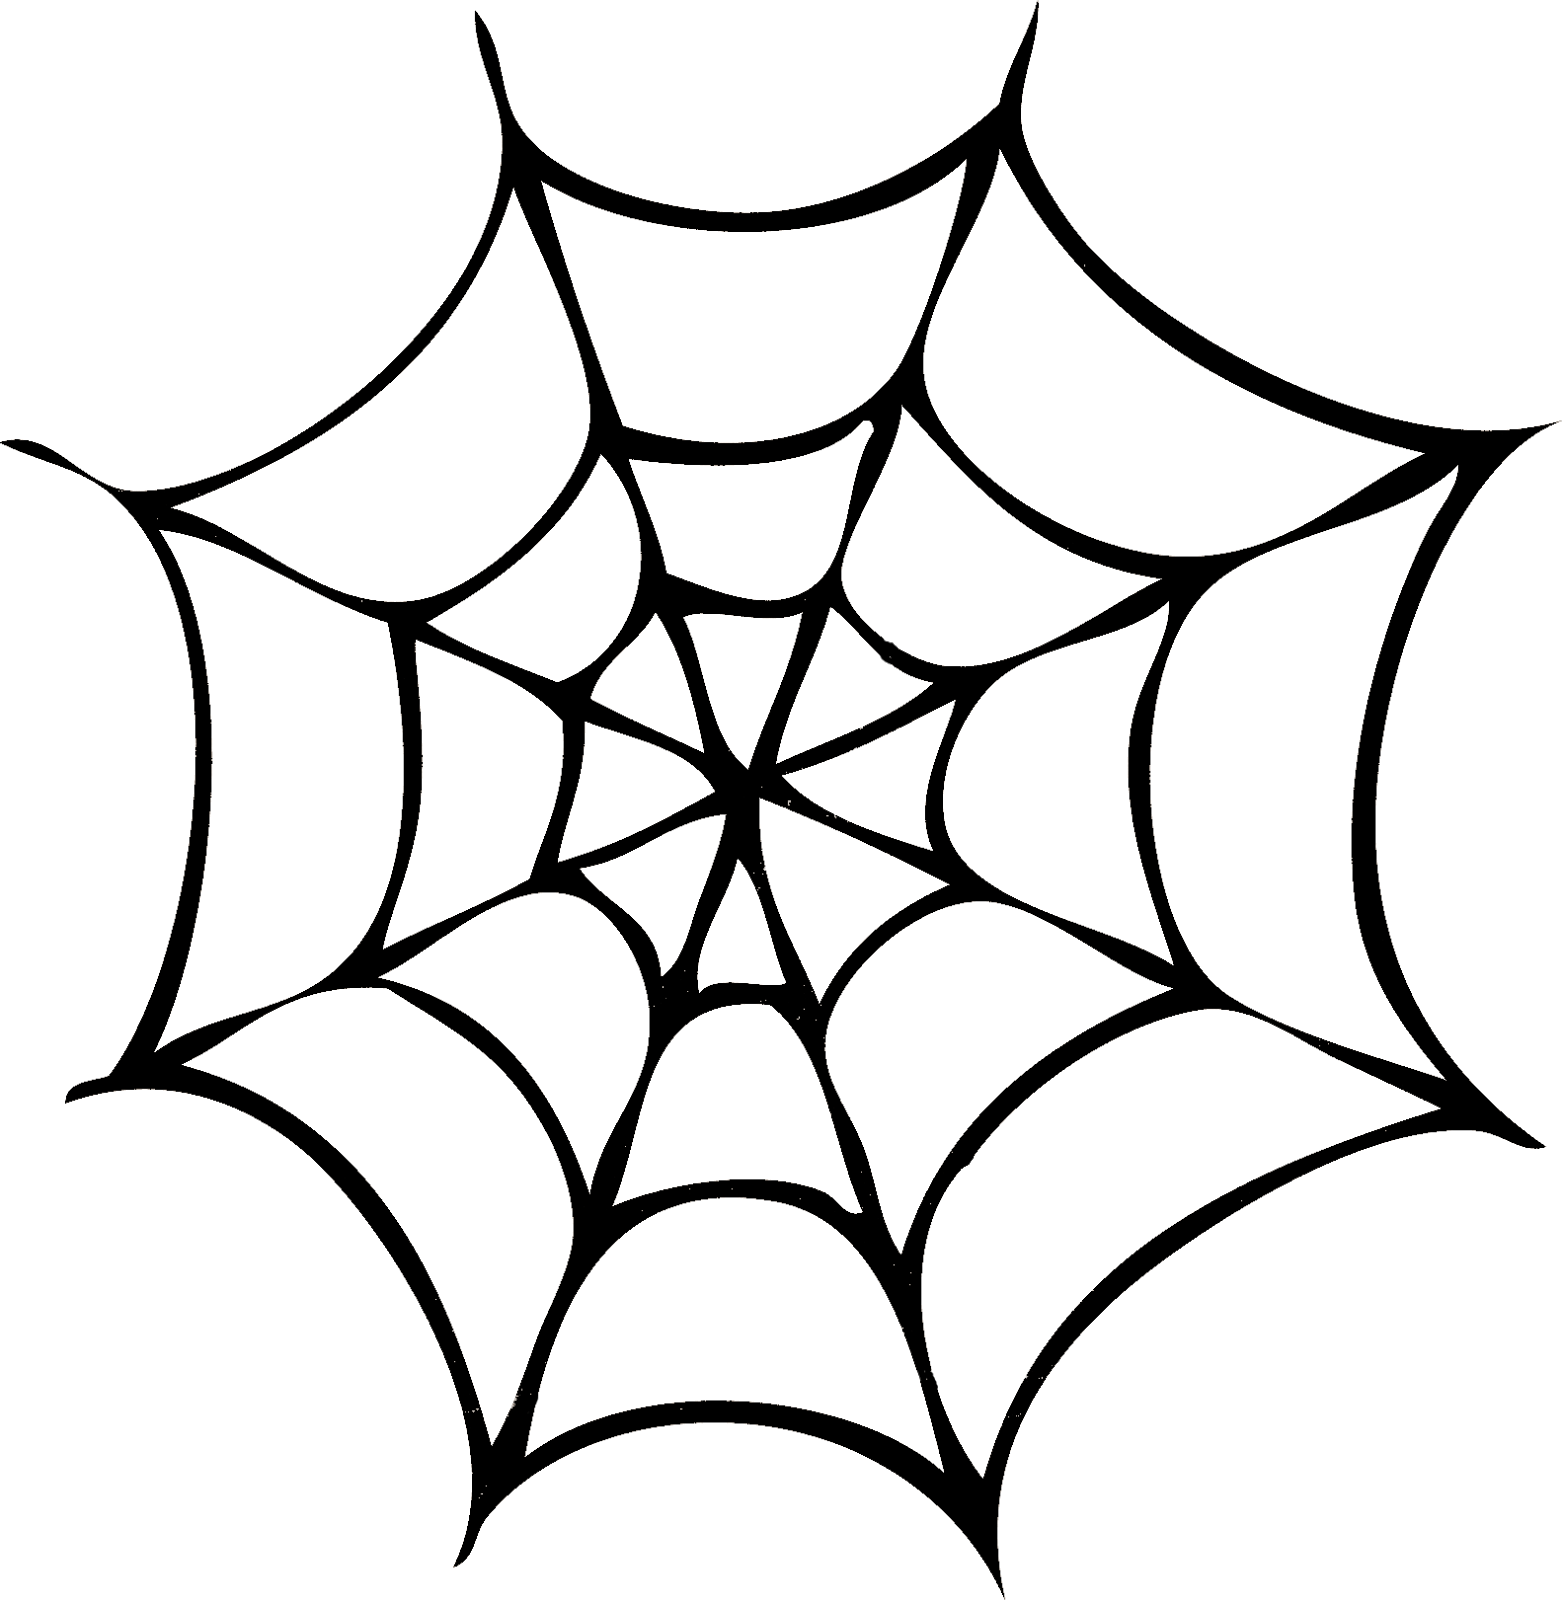 Silhouettes Di Halloween Free Halloween Images Halloween Images Halloween Images Graphics Spider Web Drawing